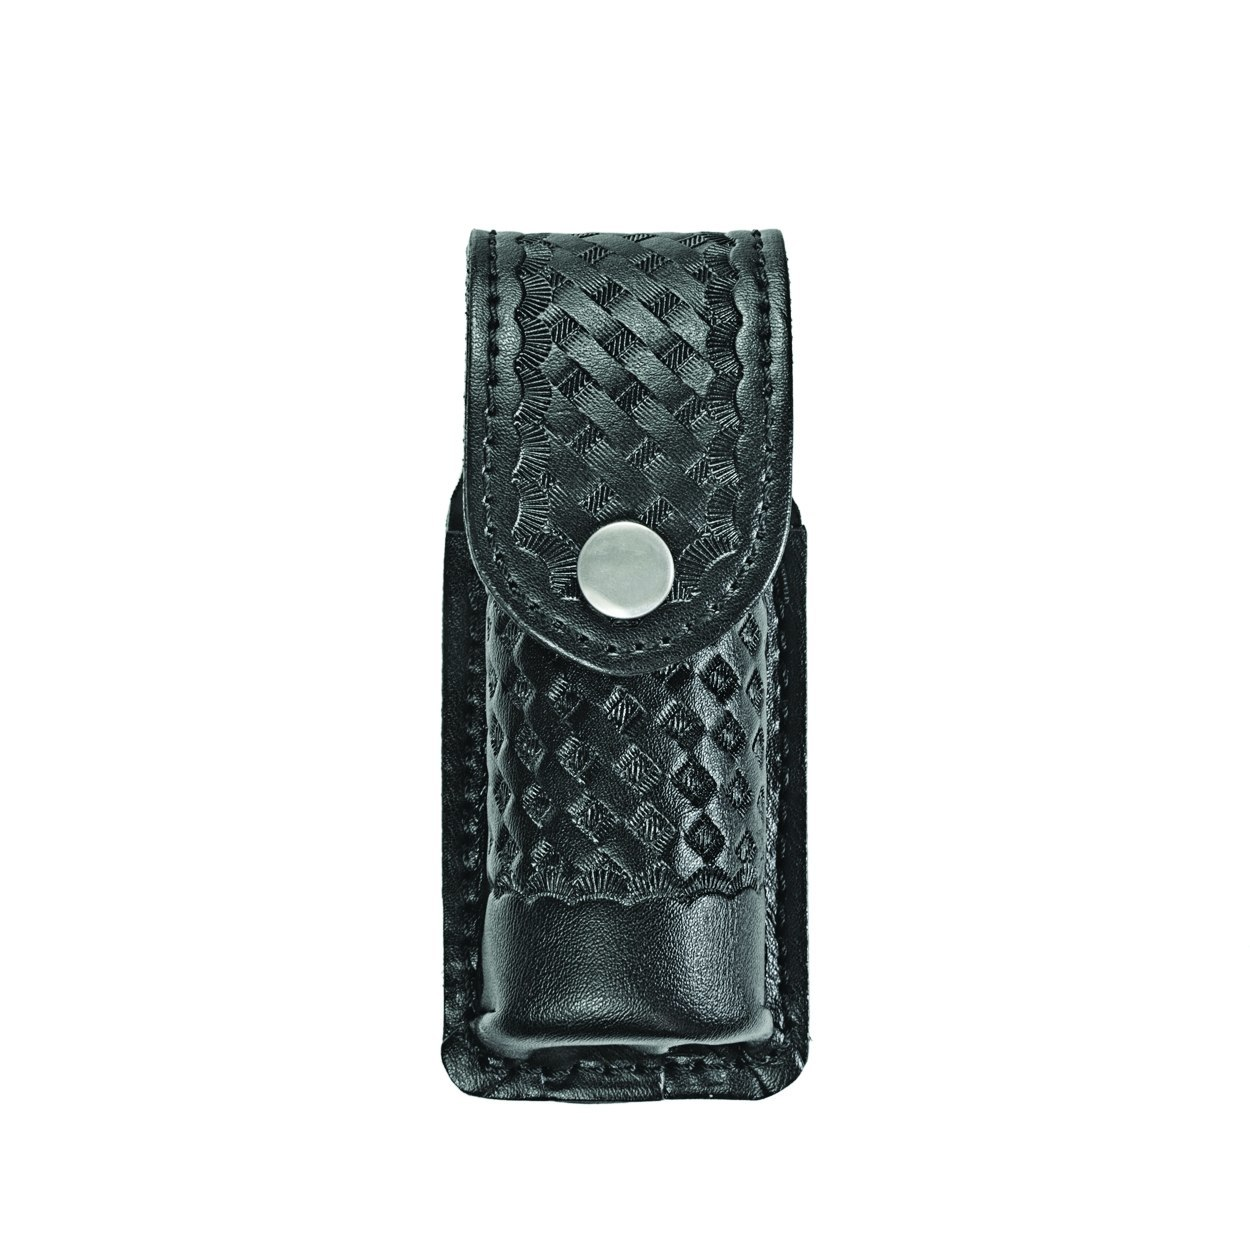 O.C. (Pepper) Spray Case, Small, MK3 (MK2,6), AirTek, BW, Nickel Snap-